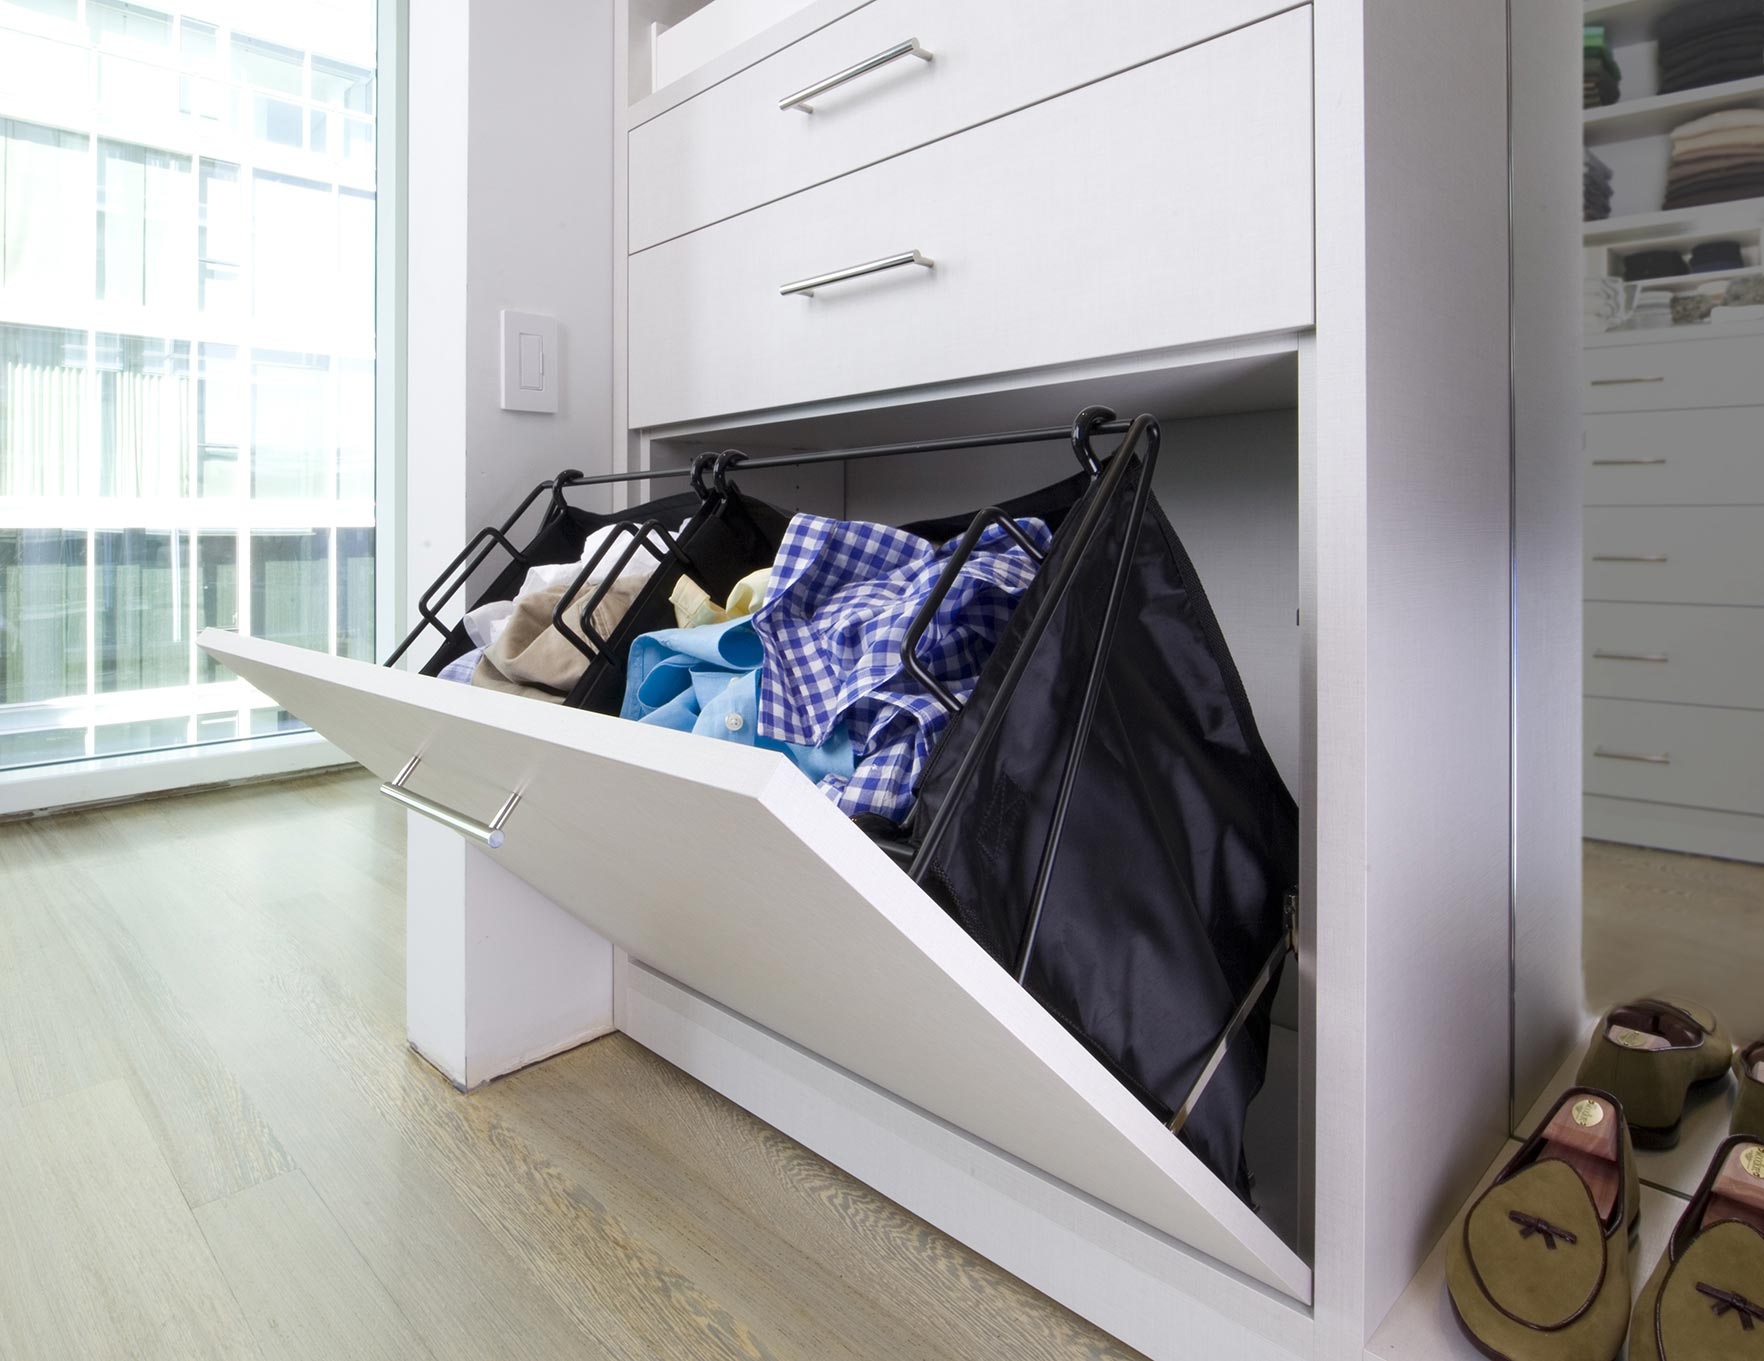 Designer Clothes Hampers Laundry Room Accessories Hampers And Baskets California